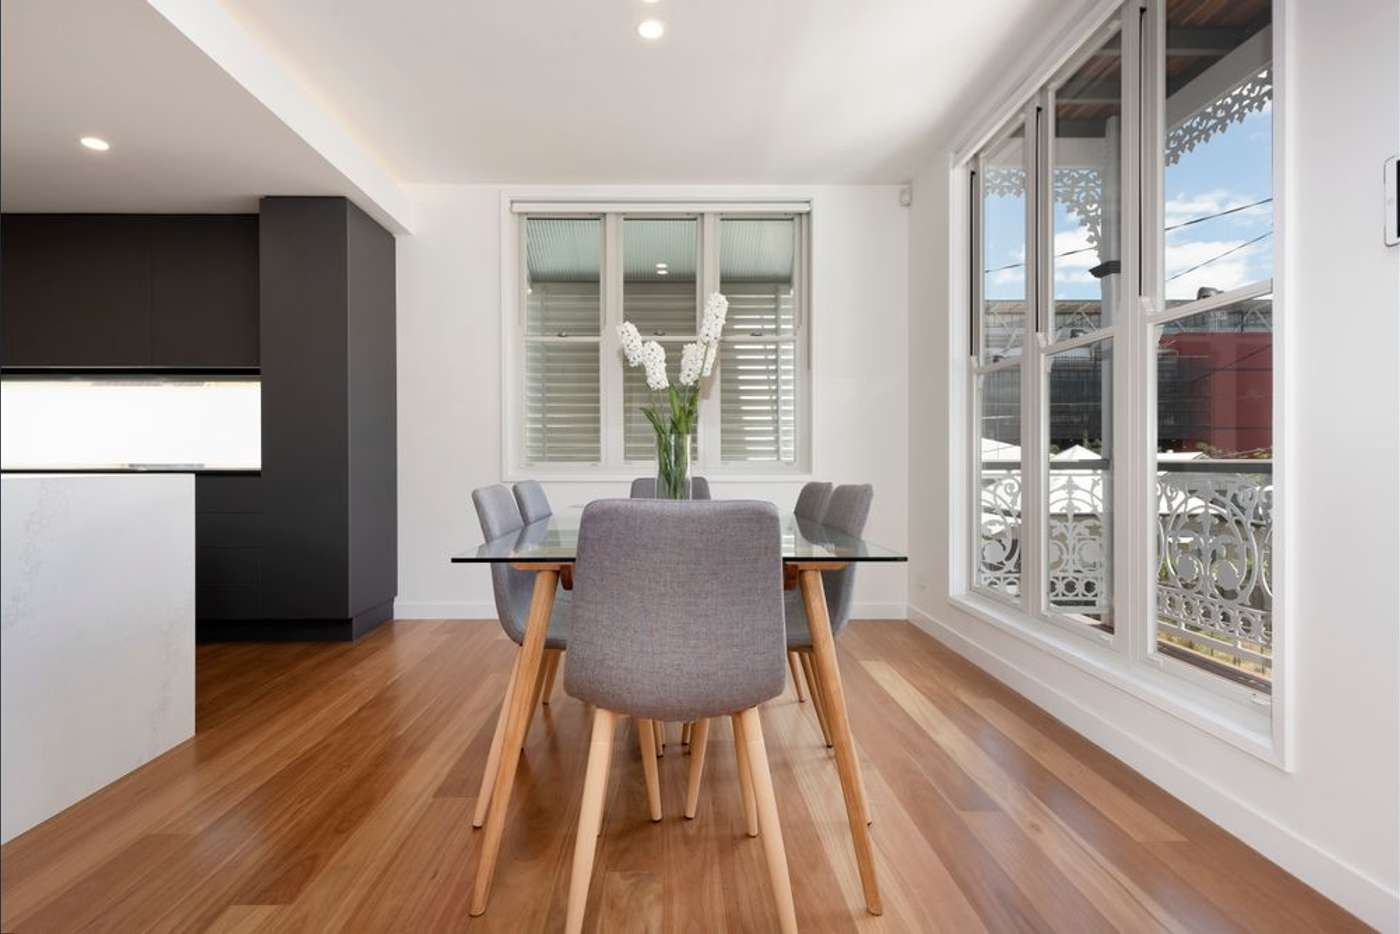 Fifth view of Homely house listing, 36 Sexton Street, Petrie Terrace QLD 4000